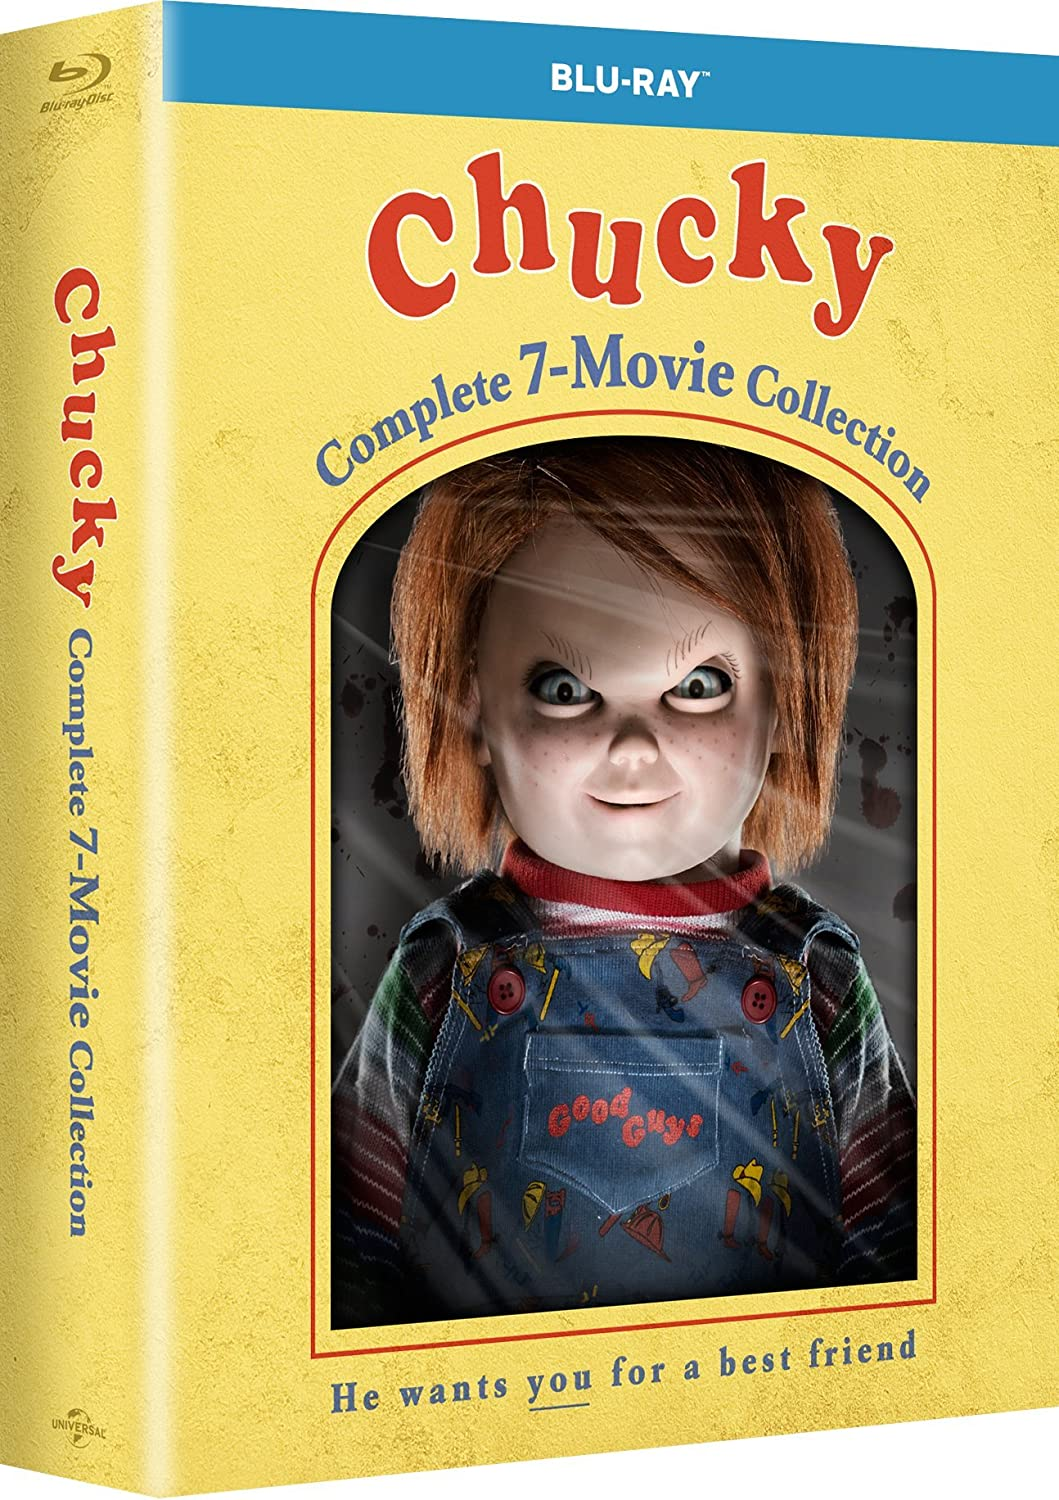 Amazon.com: Chucky: Complete 7-Movie Collection [Blu-ray]: Catherine ...